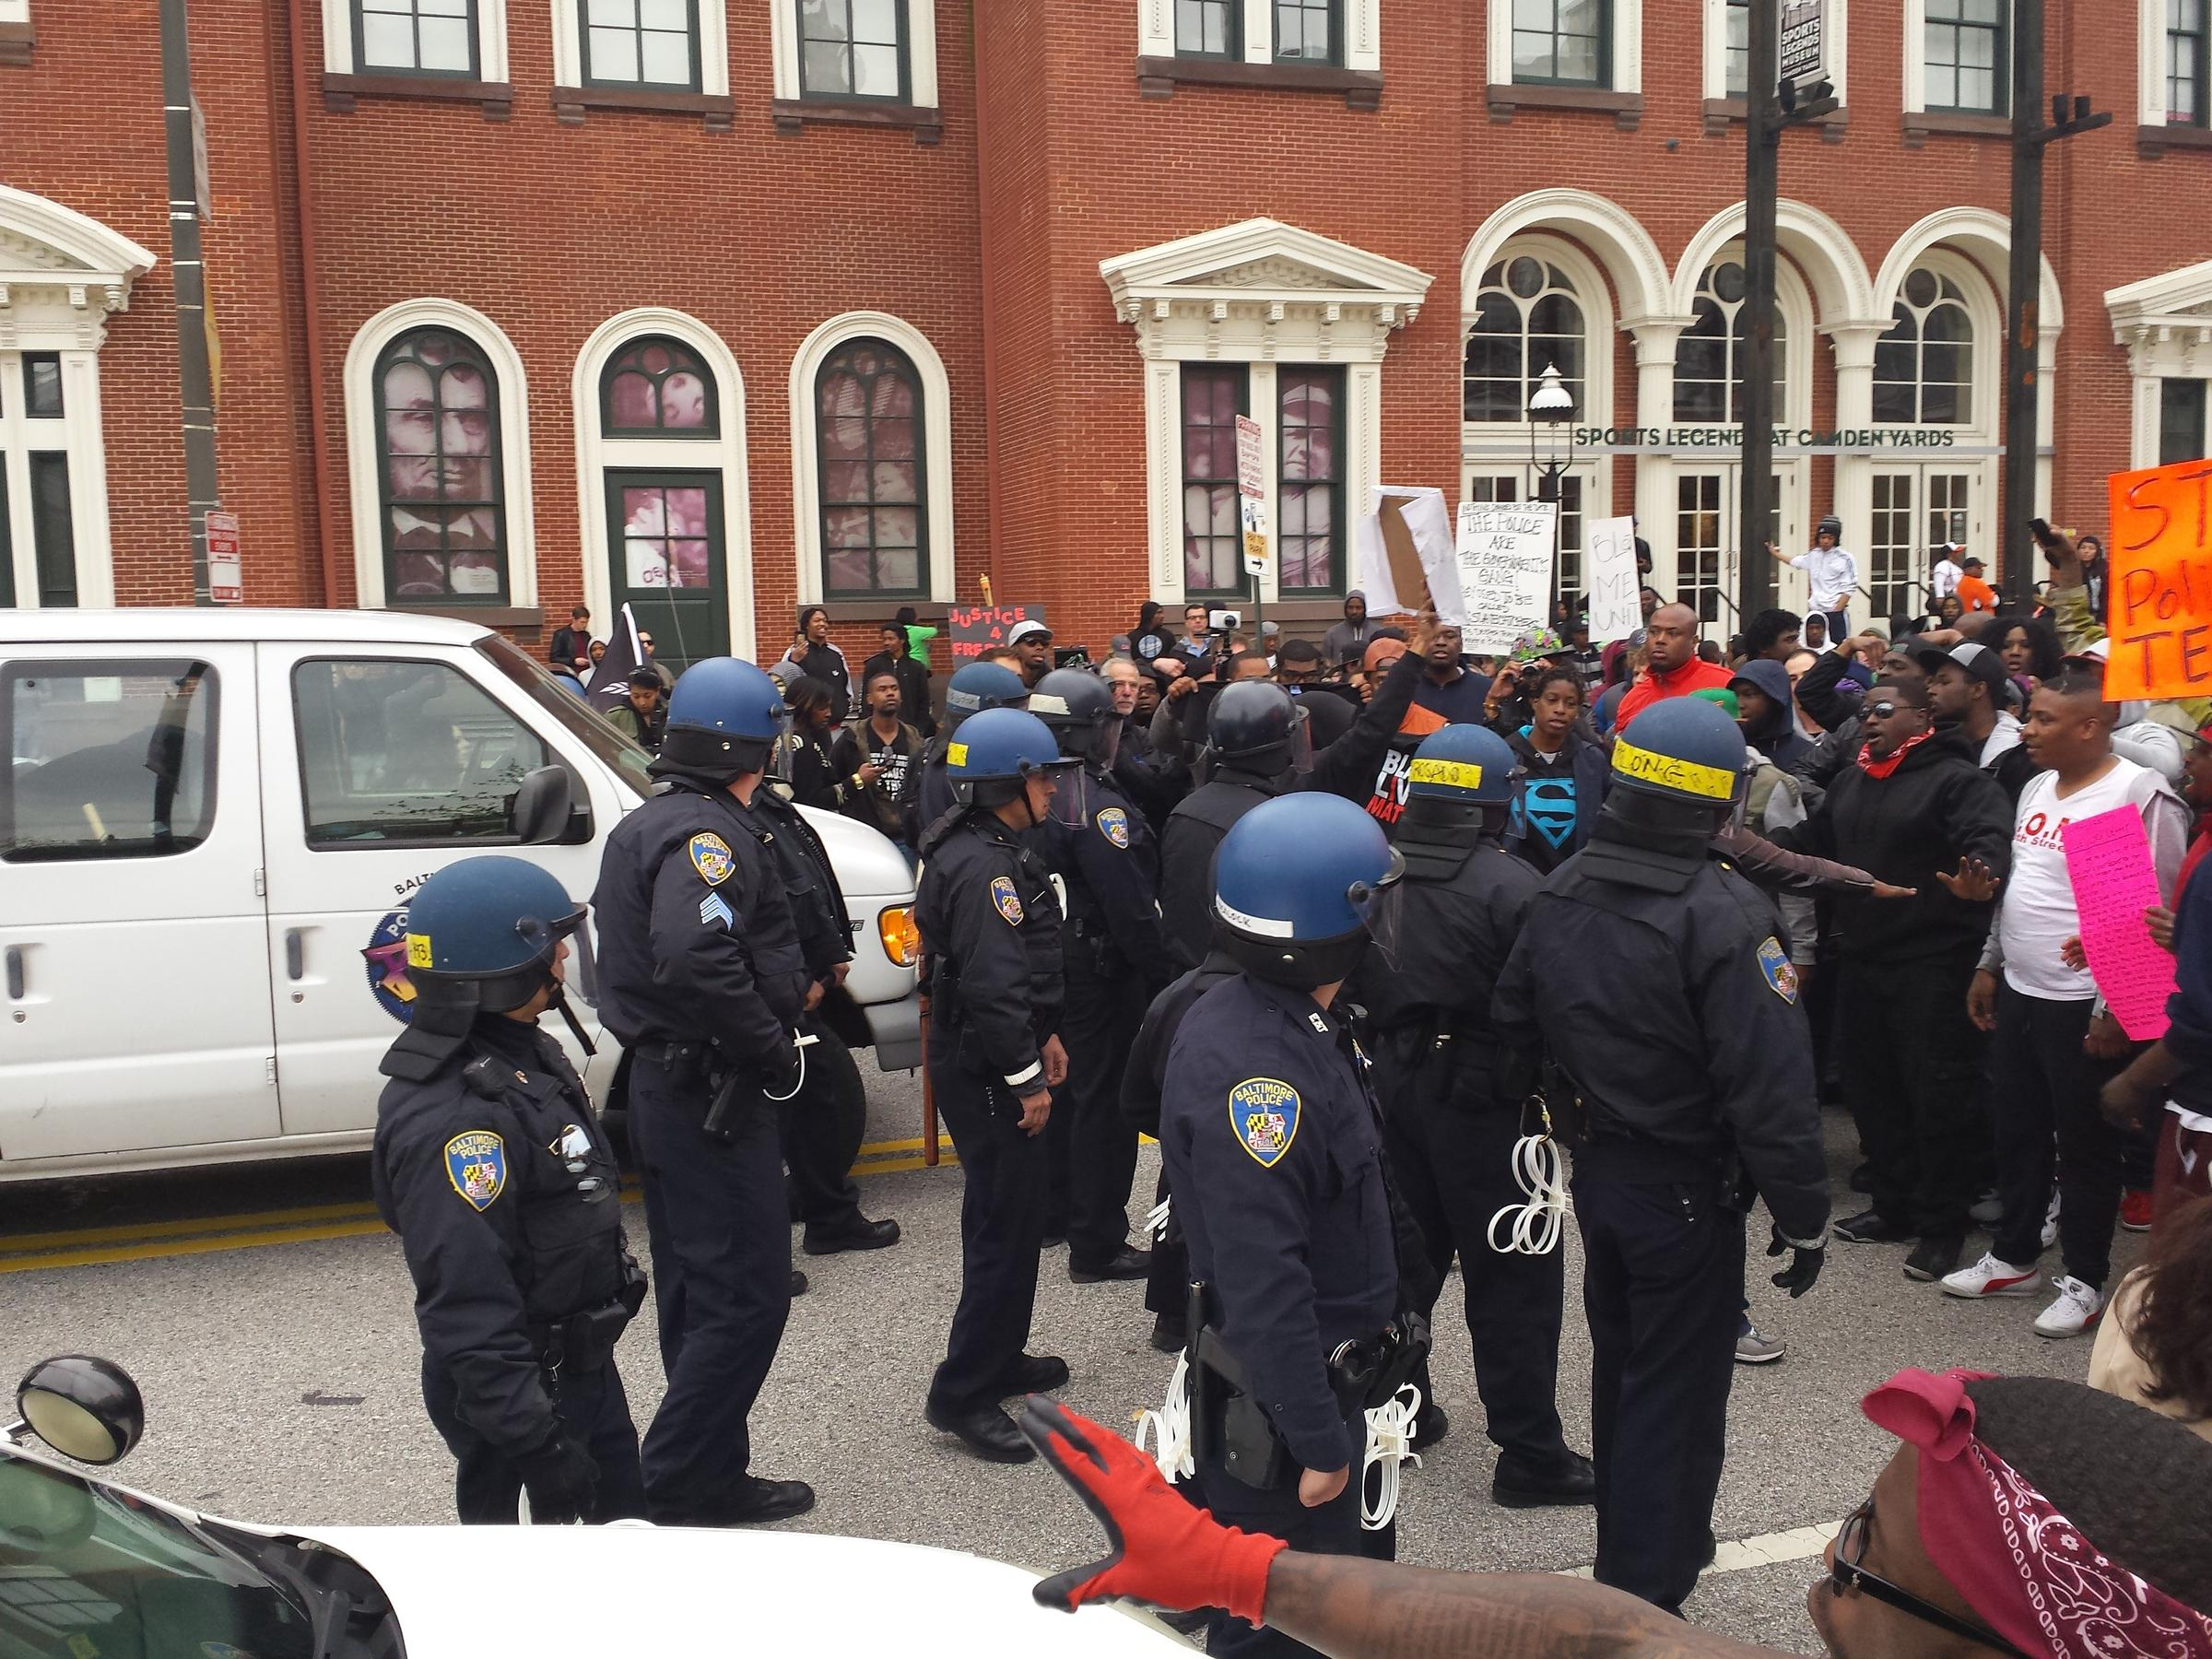 Baltimore police officers in riot gear push protestors back along - In Front Of The Sports Legends Museum Police Stood After An Exchange Between An Officer View Slideshow 6 Of 10